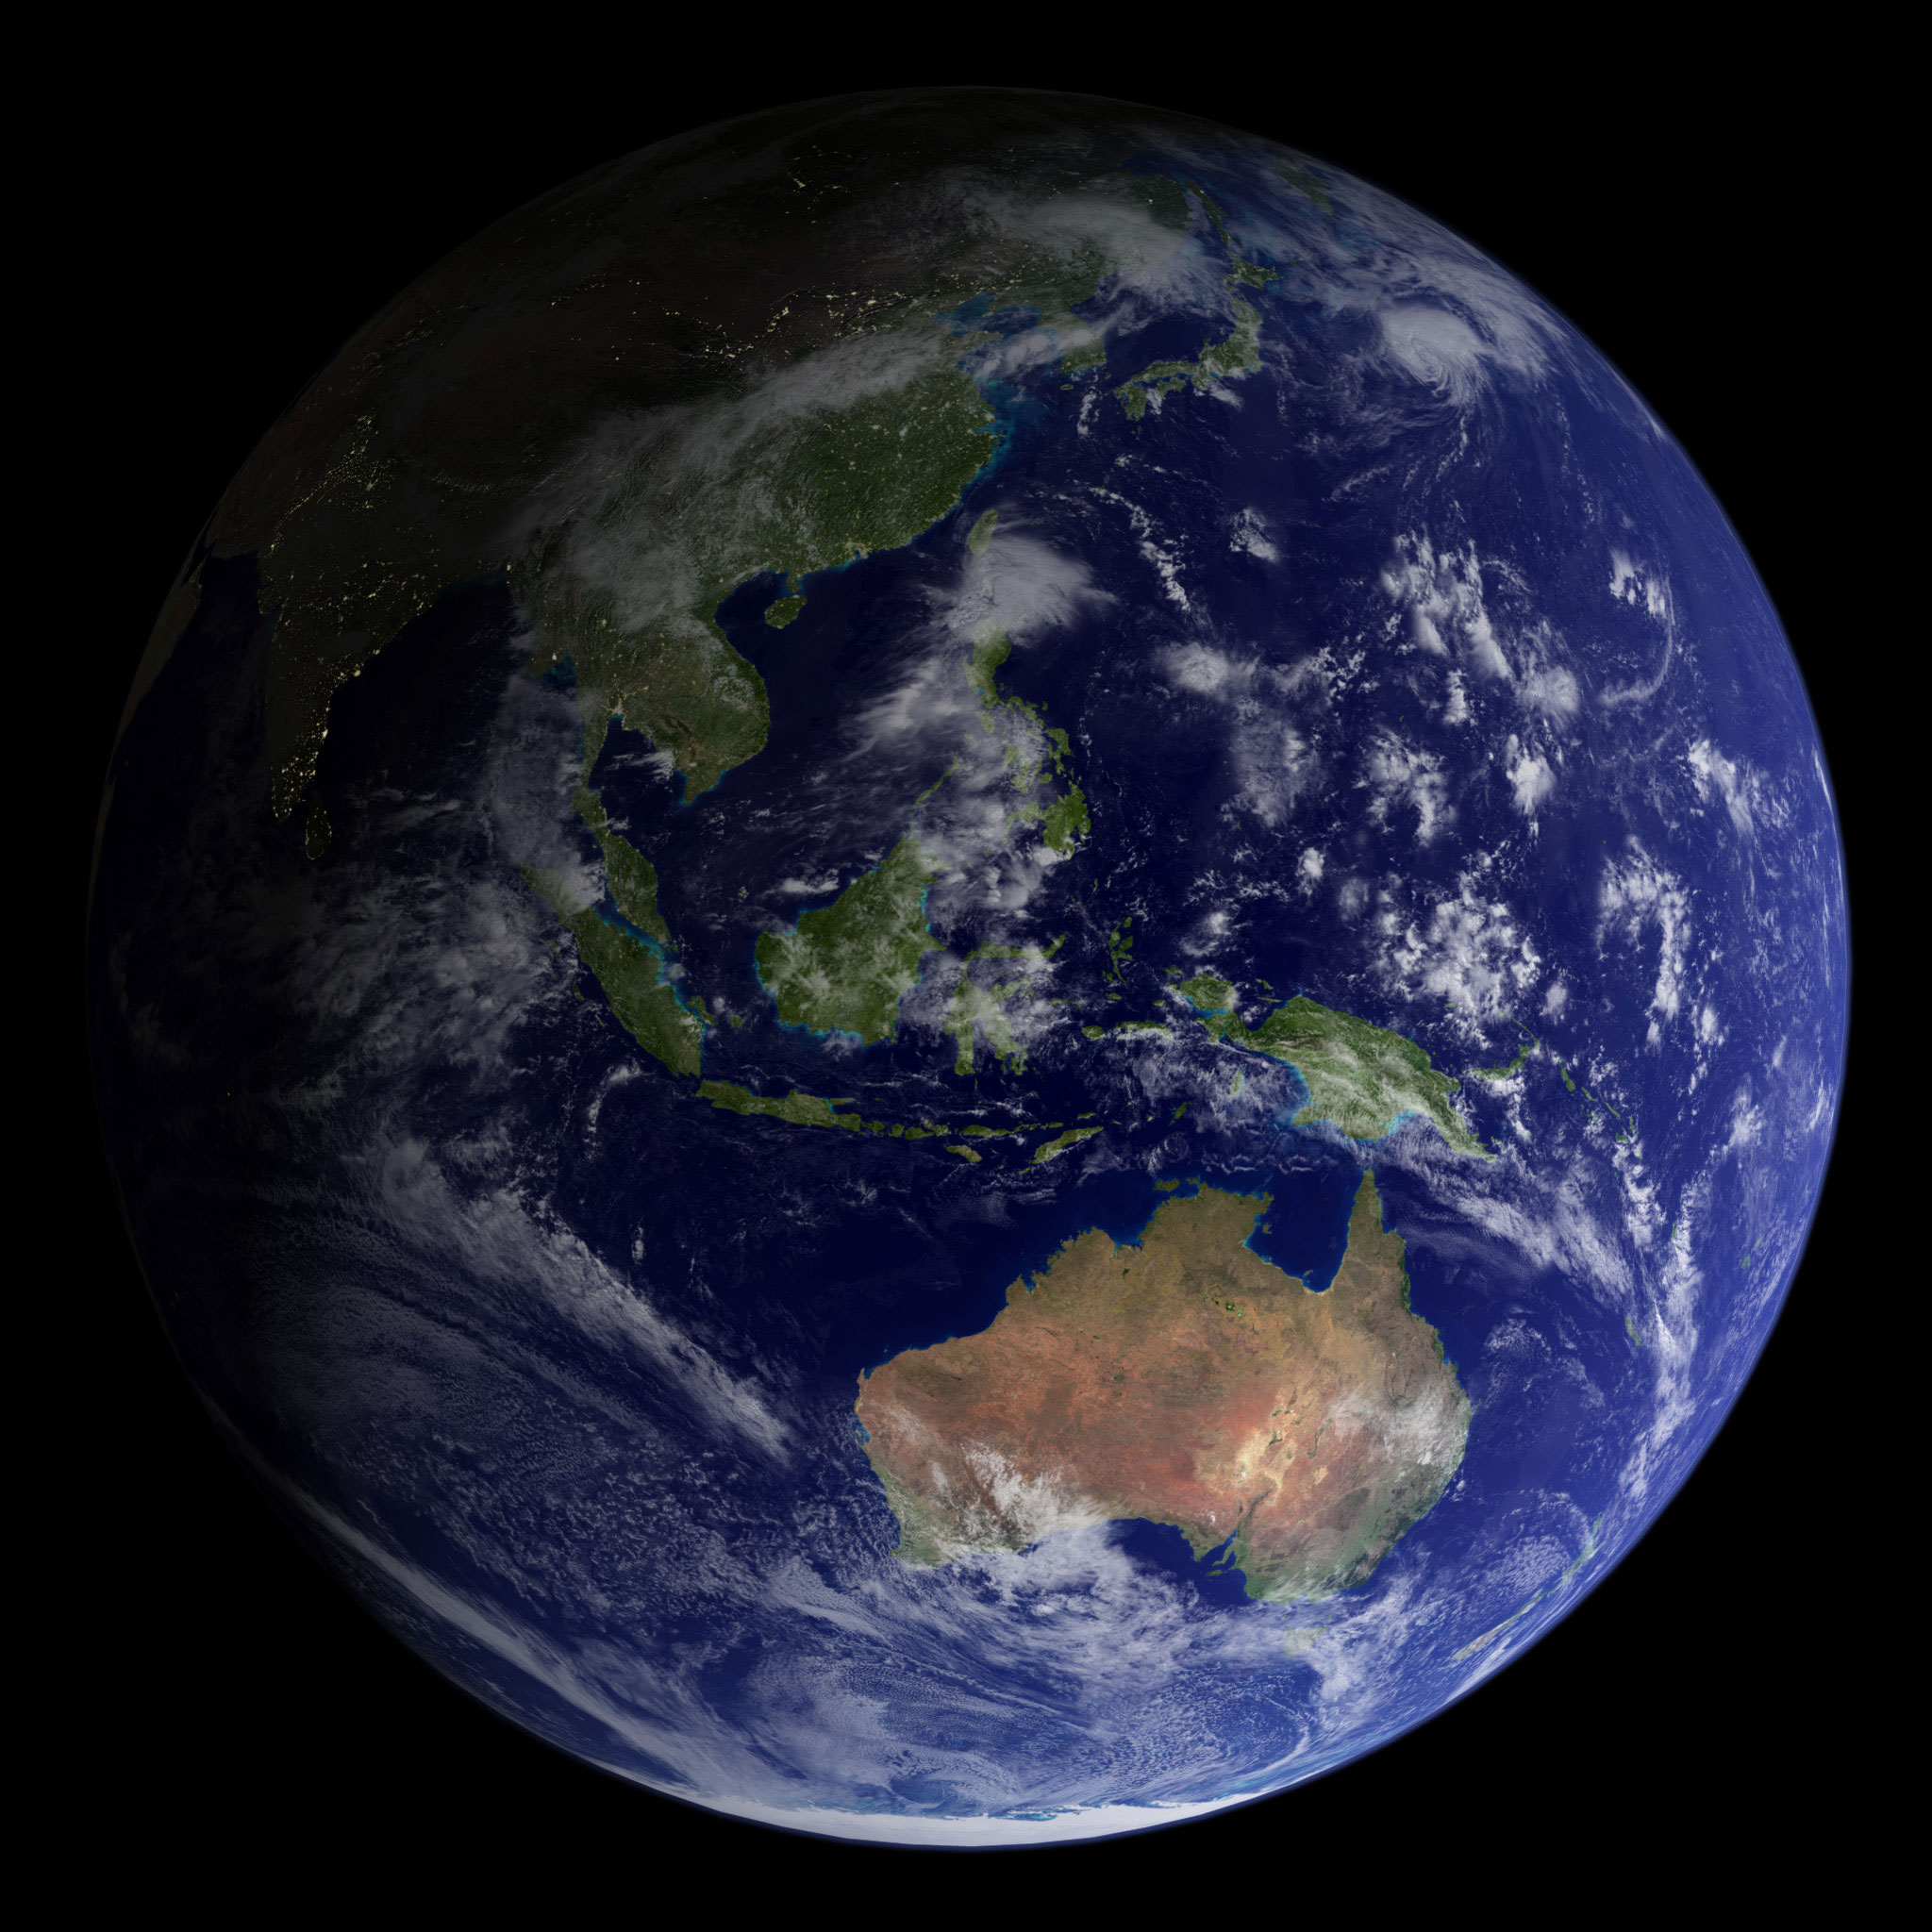 In 2002, NASA released the most detailed true-color image of the Earth's surface ever produced up to that point. Scientists and data visualizers created the image by stitching together data collected over 4 months from NASA's Terra satellite.